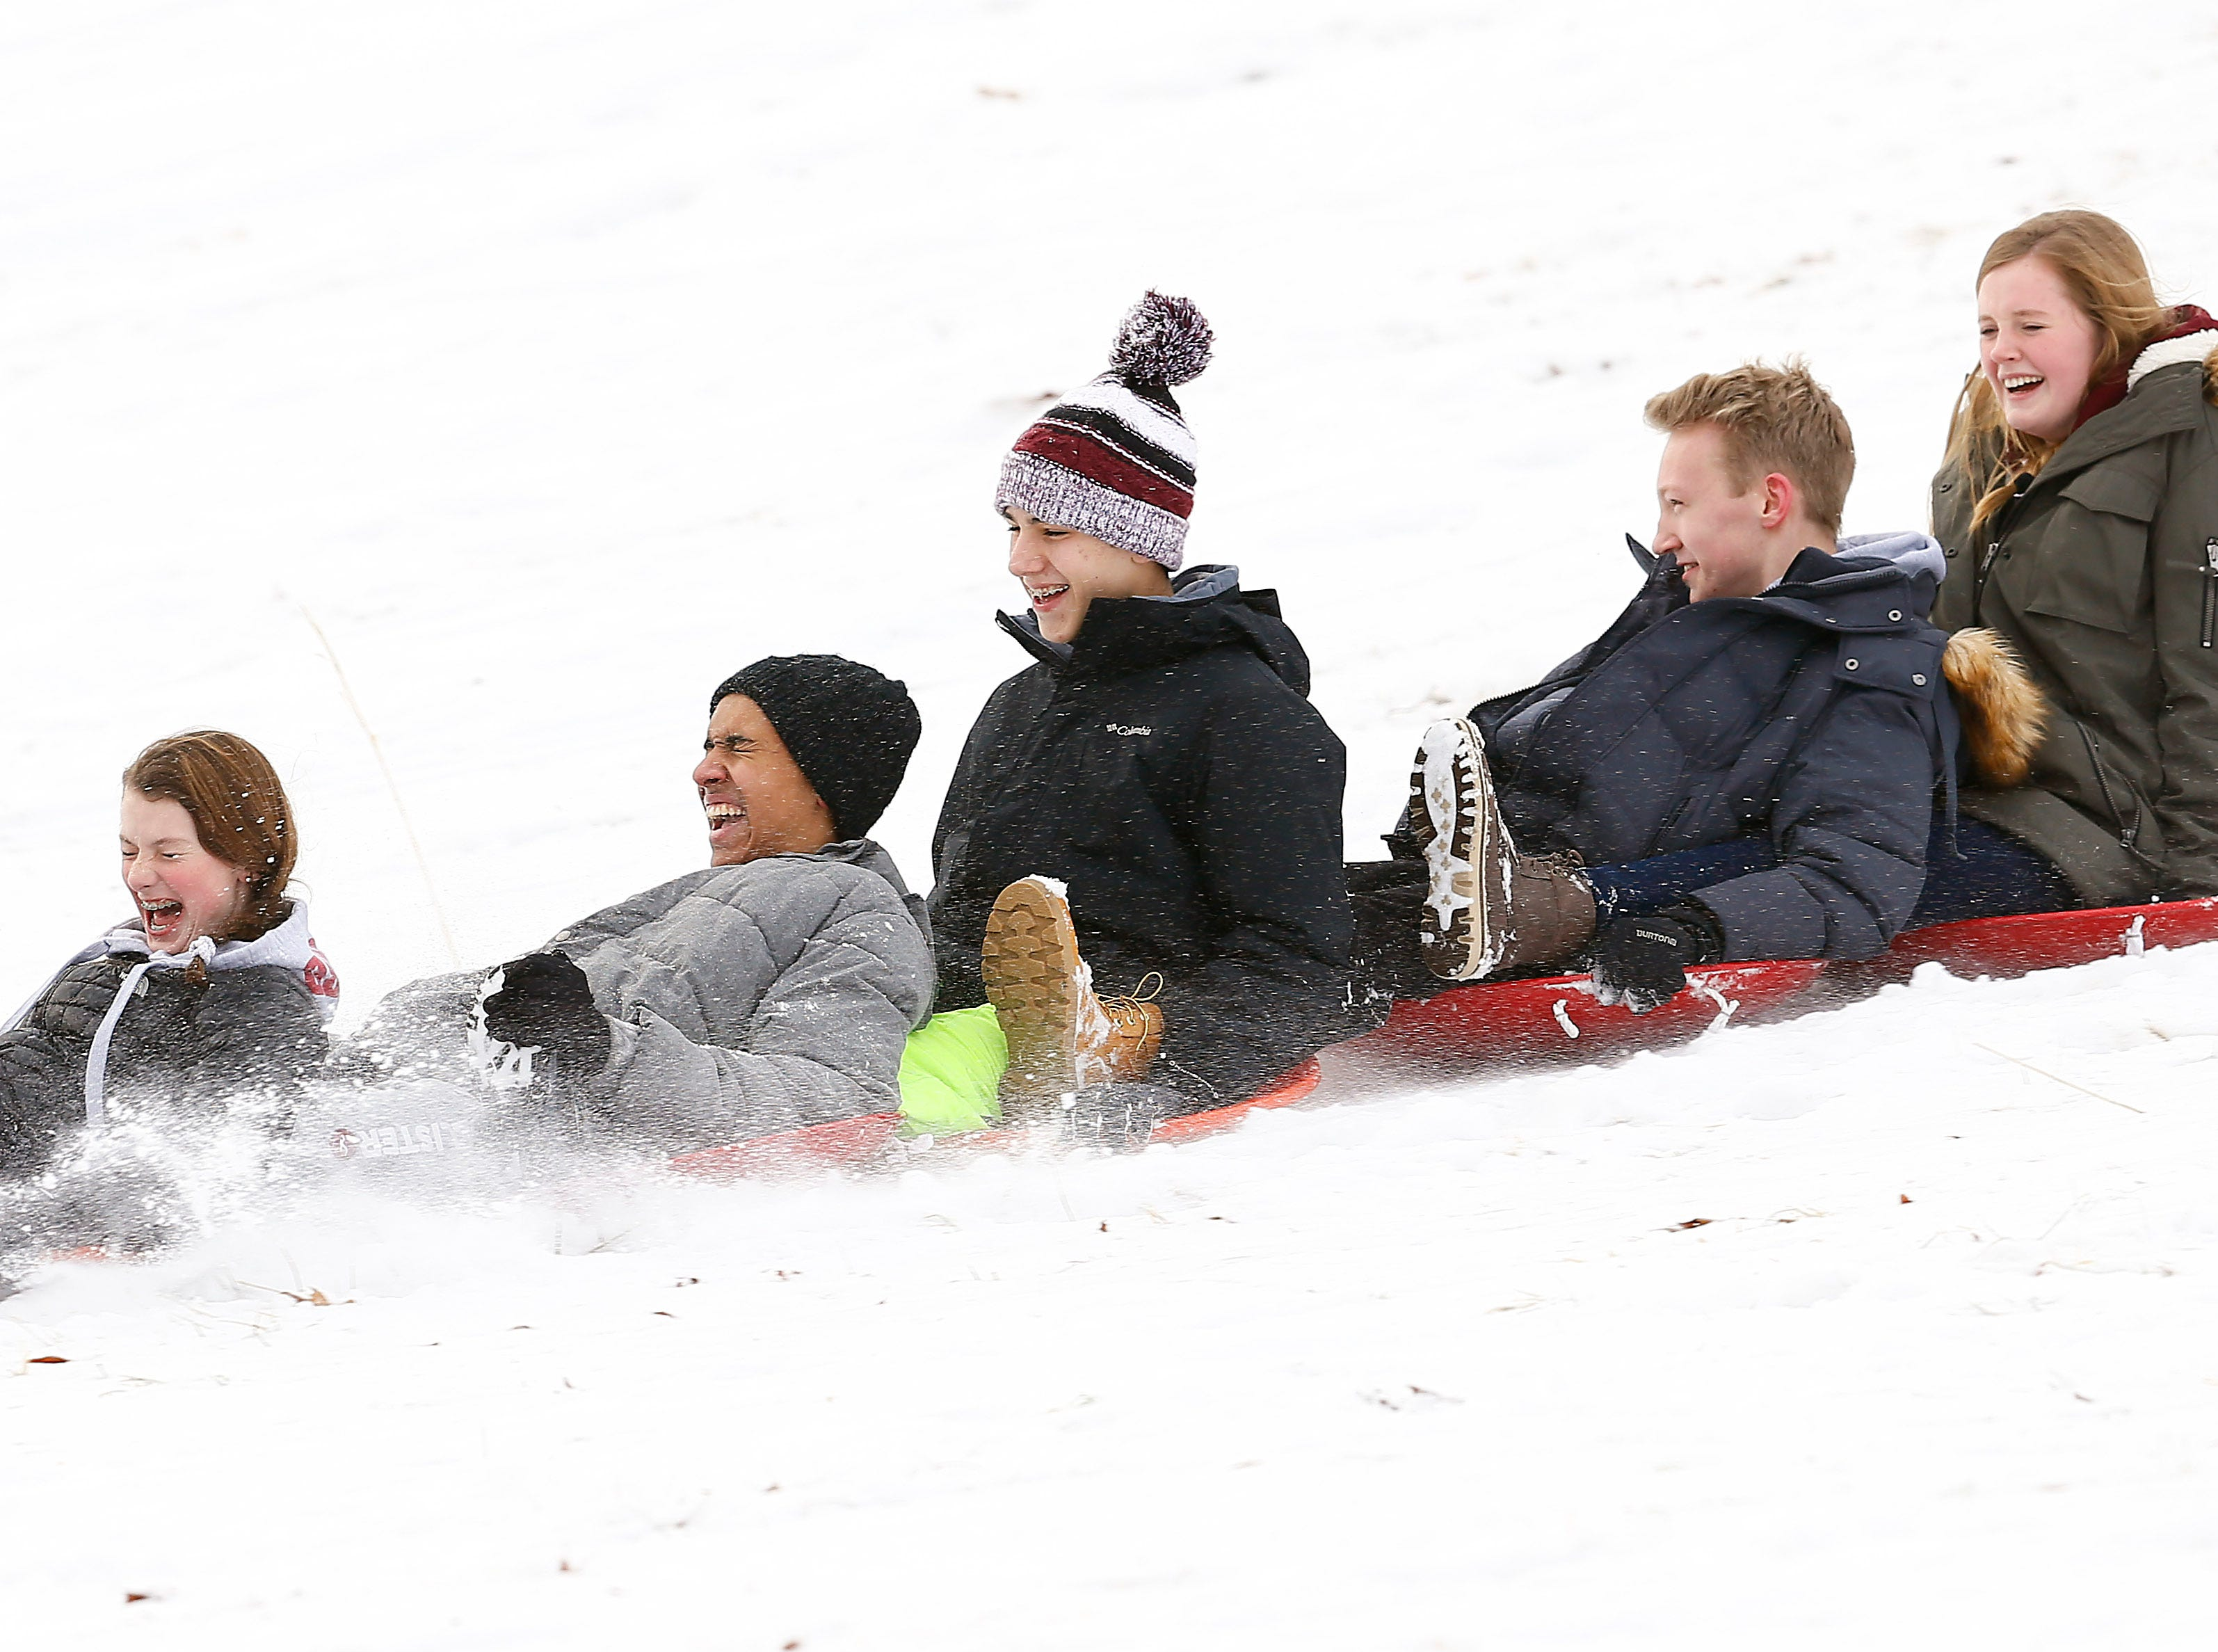 Five friends from Morristown flys down Villa Walsh Hill as children and their parents enjoy a day off from school sledding in Morristown after the area received about 4 inches of snow. January 17, 2018. Morristown, NJ.